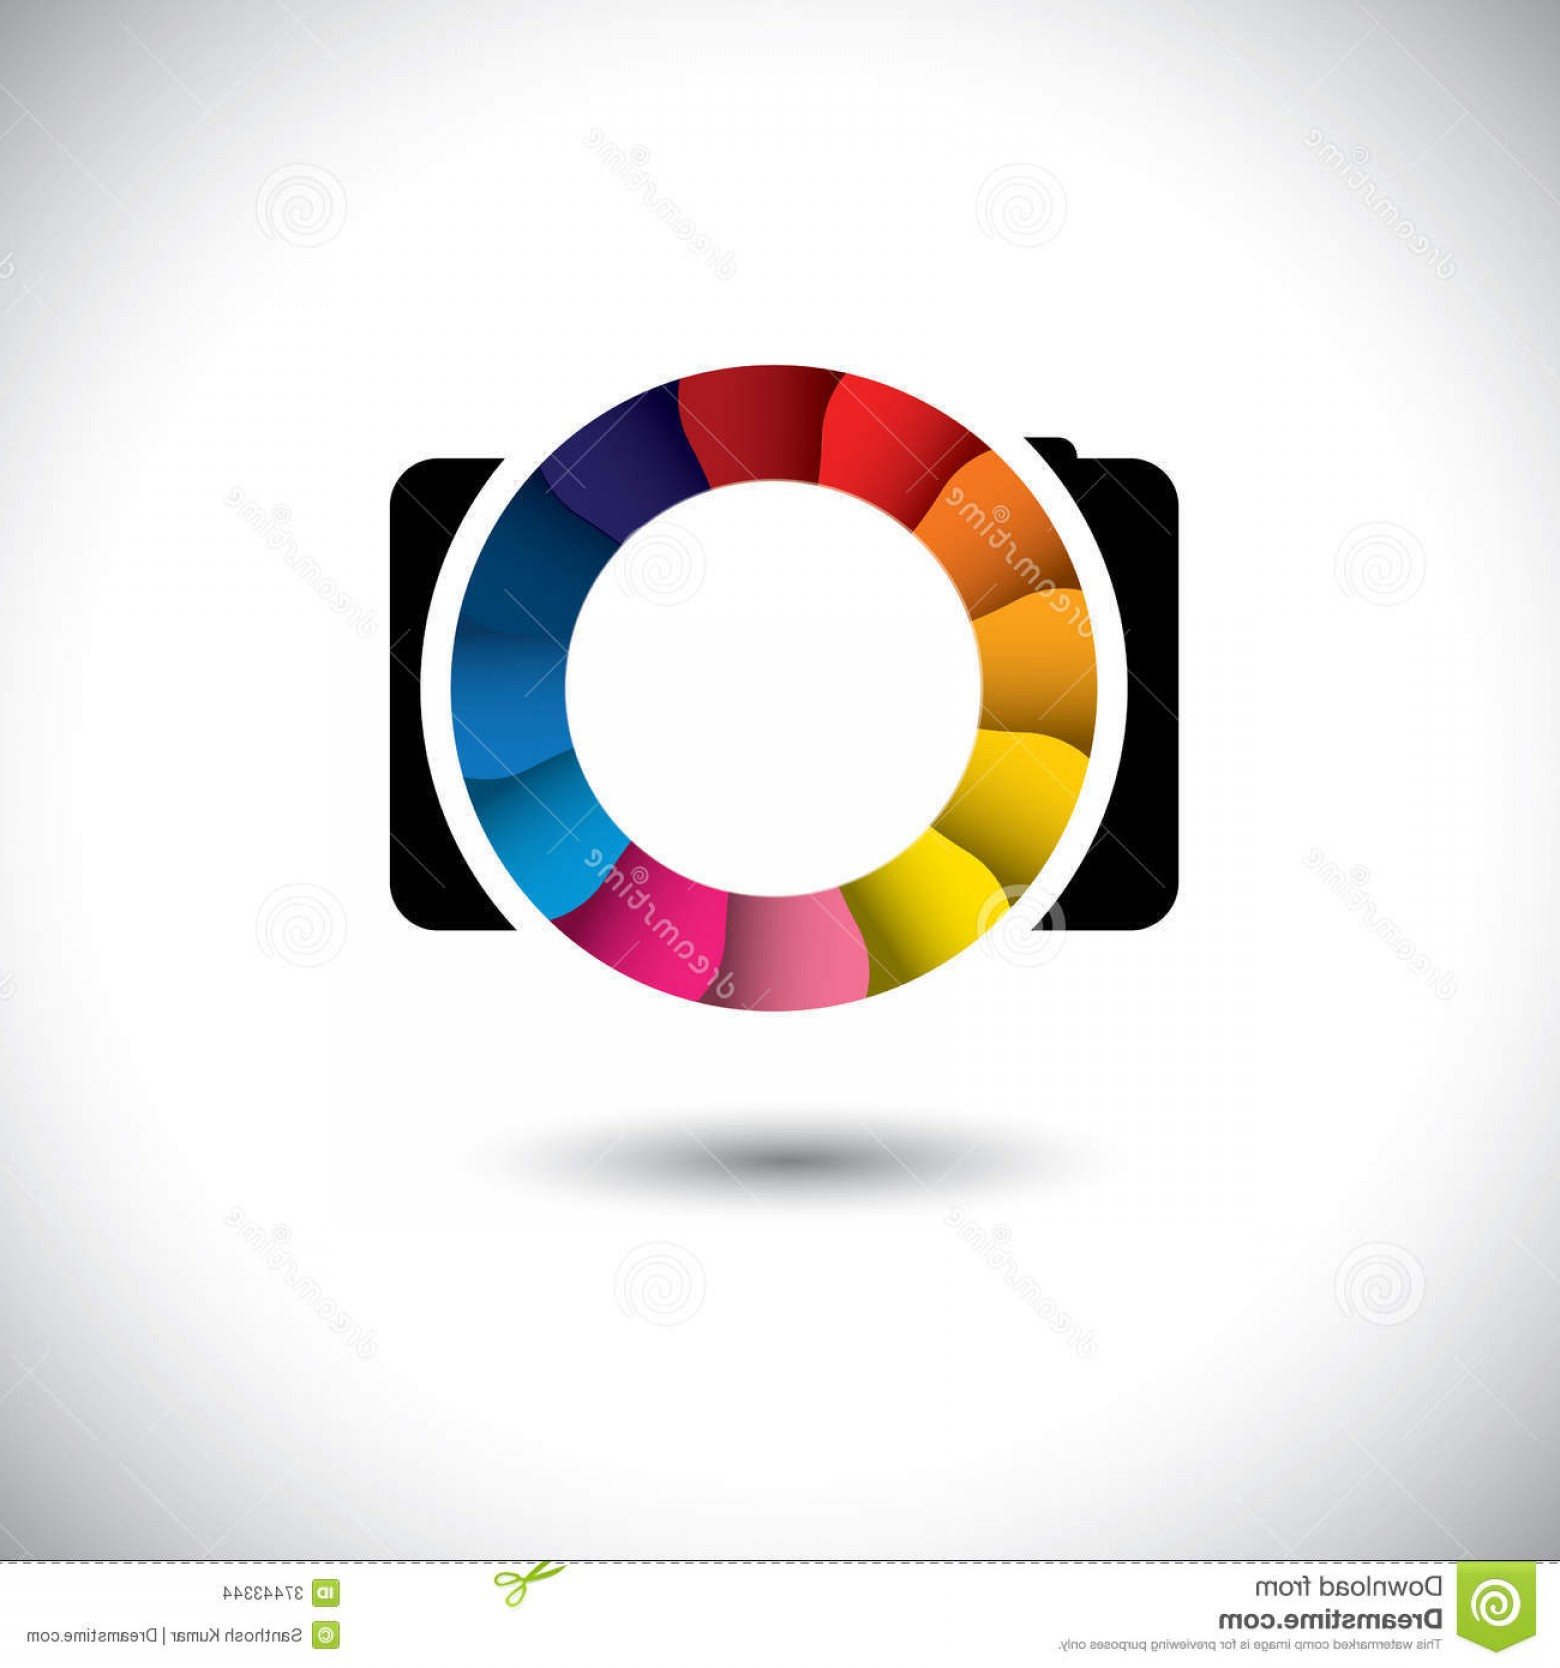 Camera Shutter Vector Art: Stock Images Abstract Slr Digital Camera Colorful Shutter Vector Icon Graphic Simple Representation Stylish Lens Image